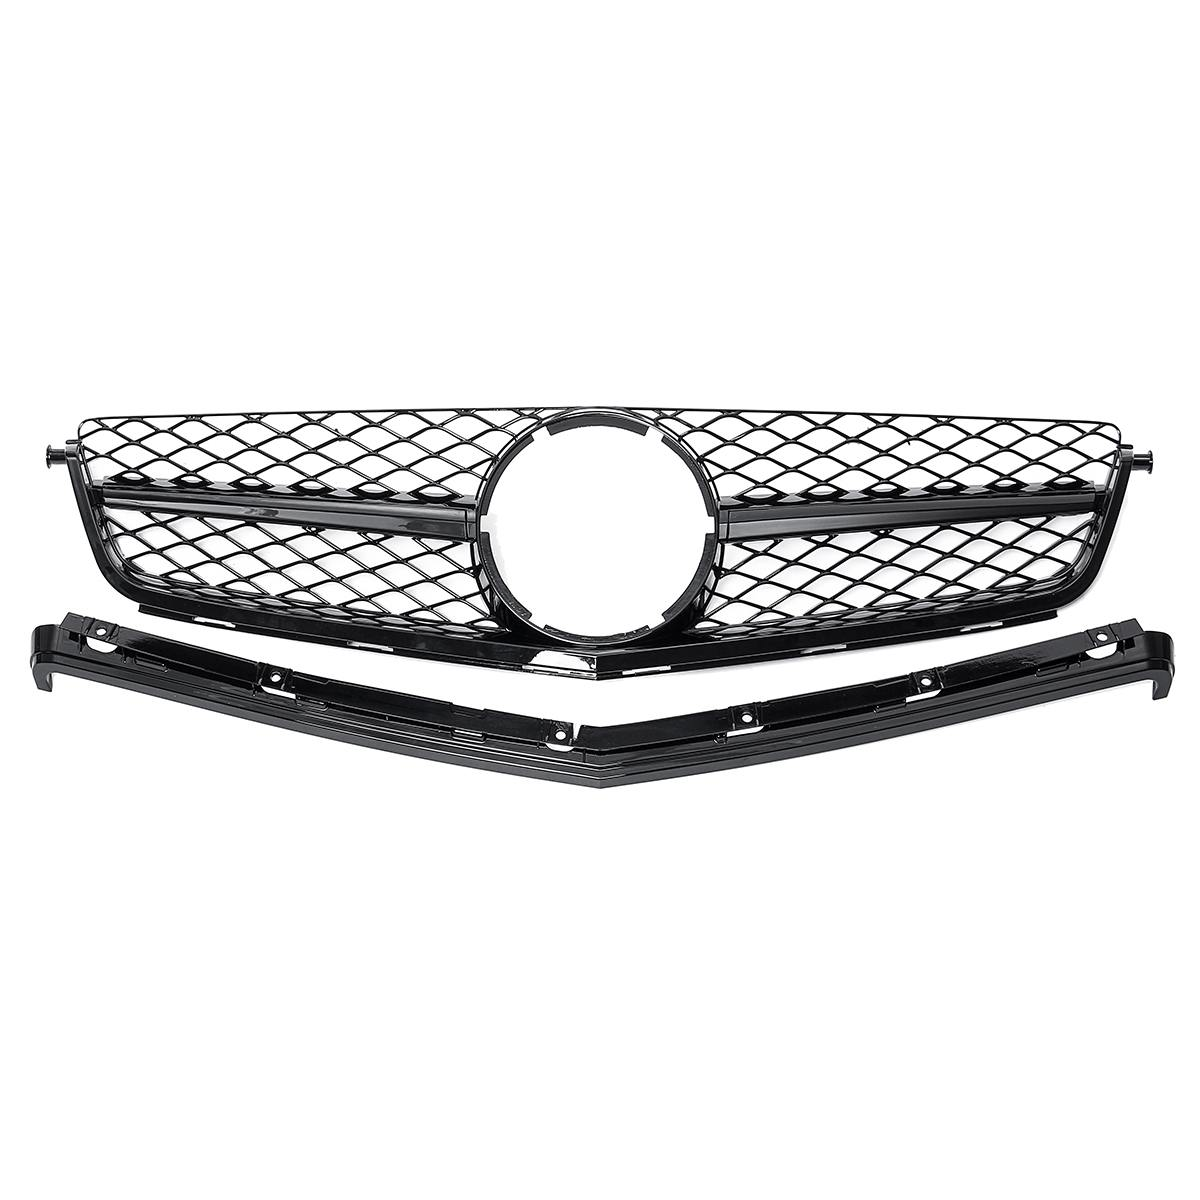 <font><b>W204</b></font> Real For AMG Model Car Front Grille <font><b>Grill</b></font> For Mercedes For <font><b>Benz</b></font> C-Class <font><b>W204</b></font> C63 For AMG 2Dr/4Dr Sedan 2008 2009 2010 2011 image